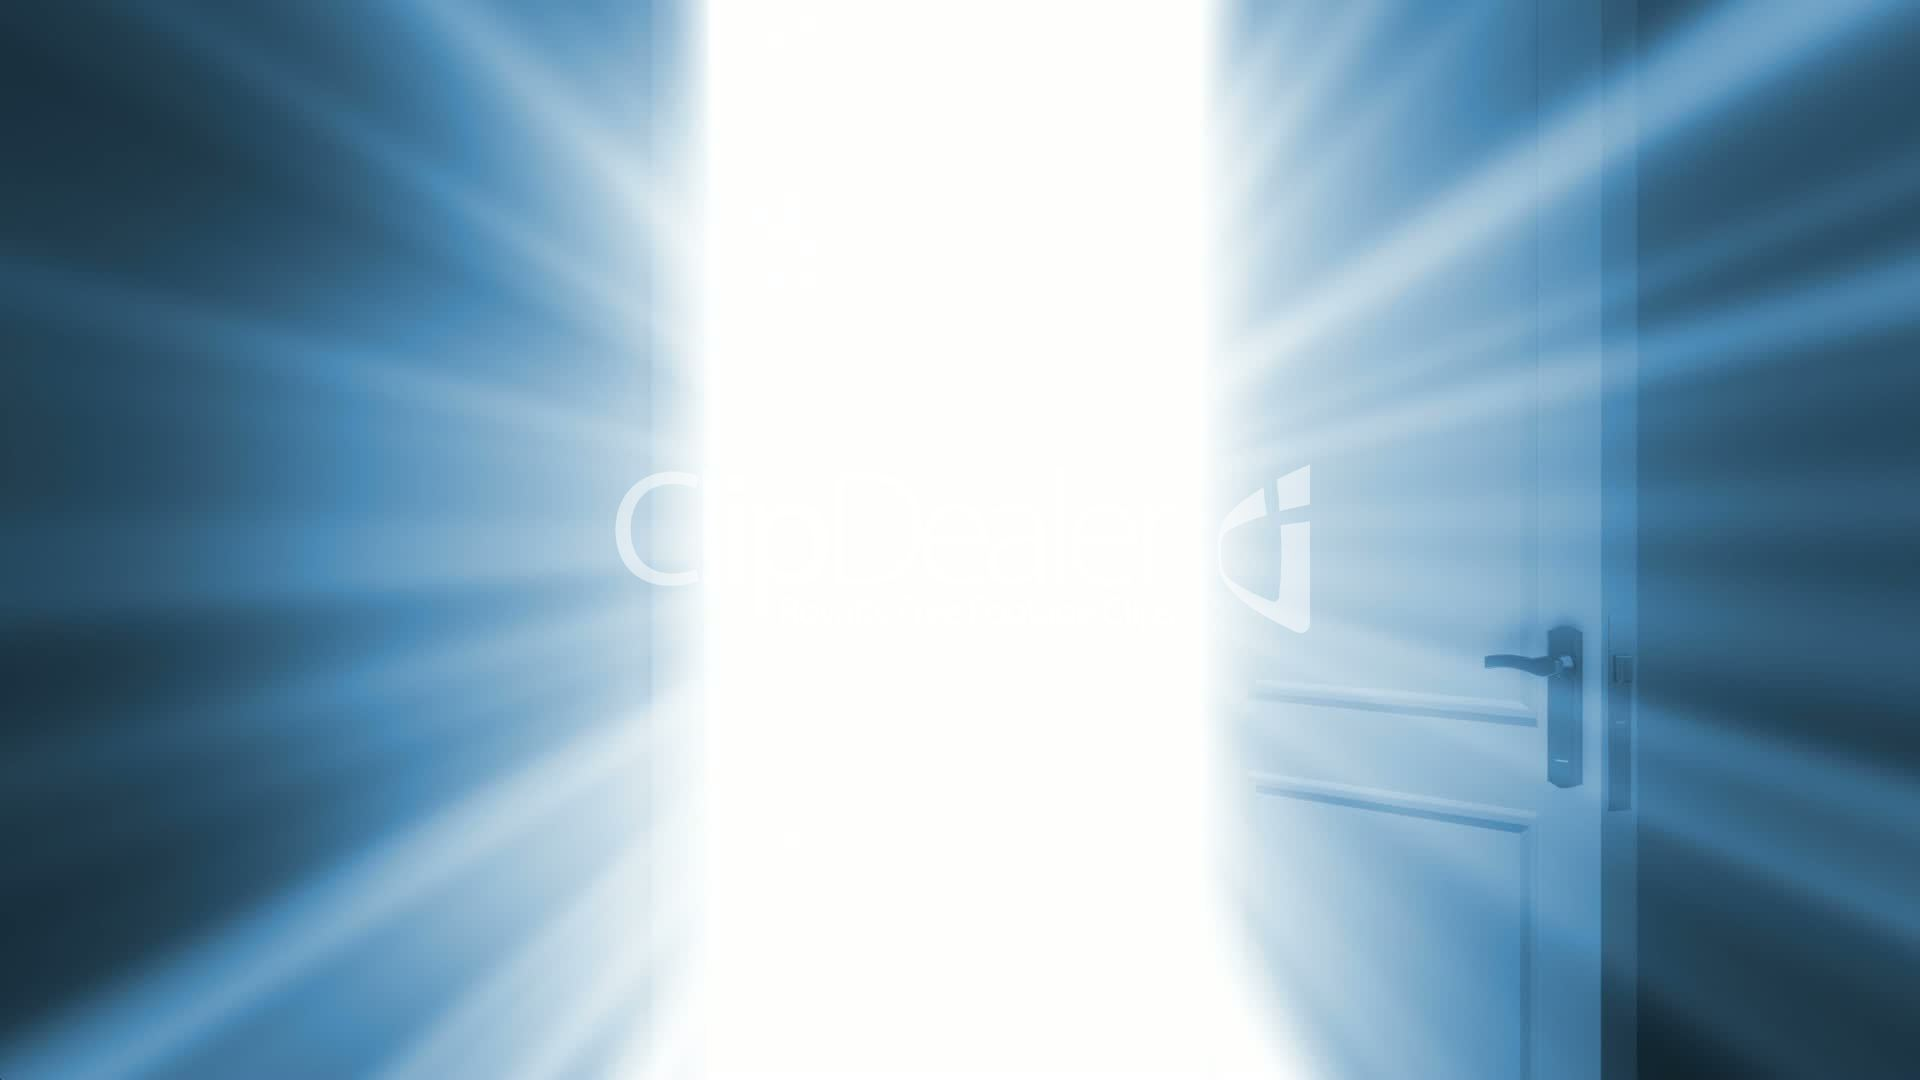 Door Opening To A Bright Light Alpha Channel Is Included